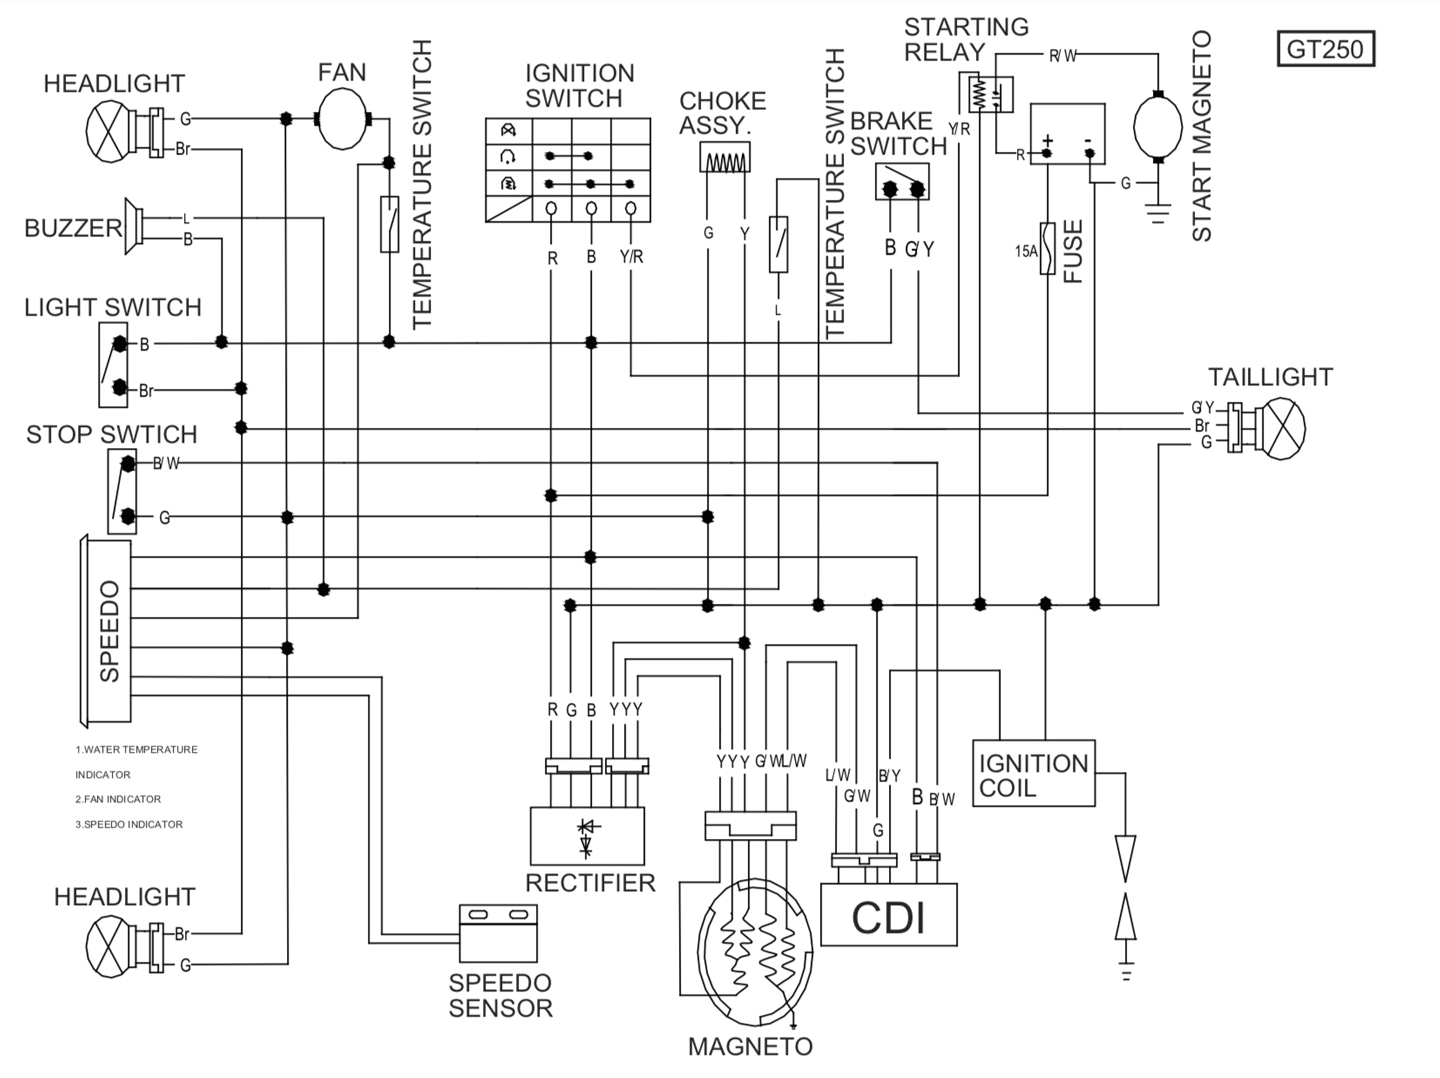 gt250 wiring diagram jpg